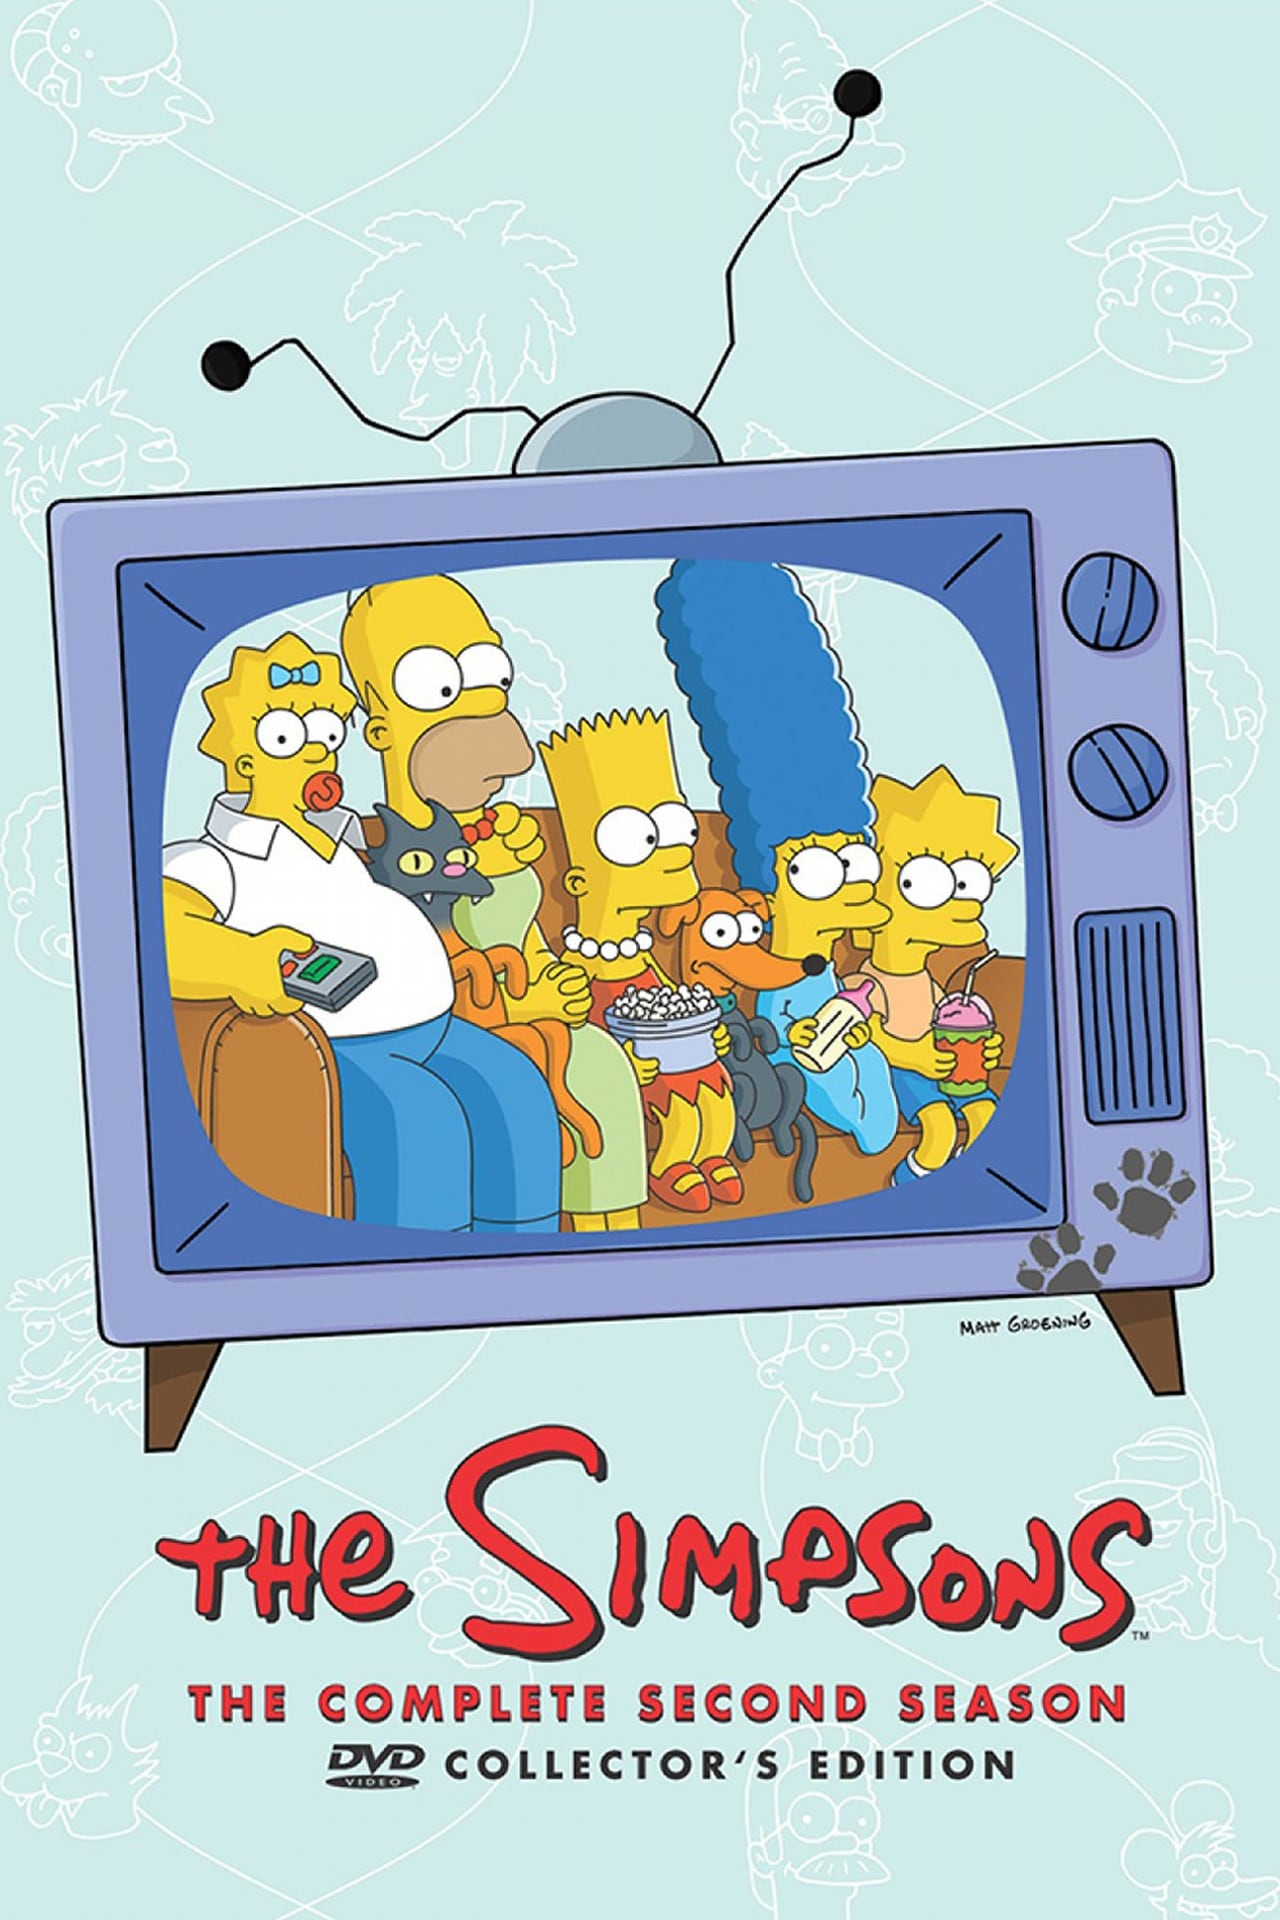 Putlocker The Simpsons Season 2 (1991)